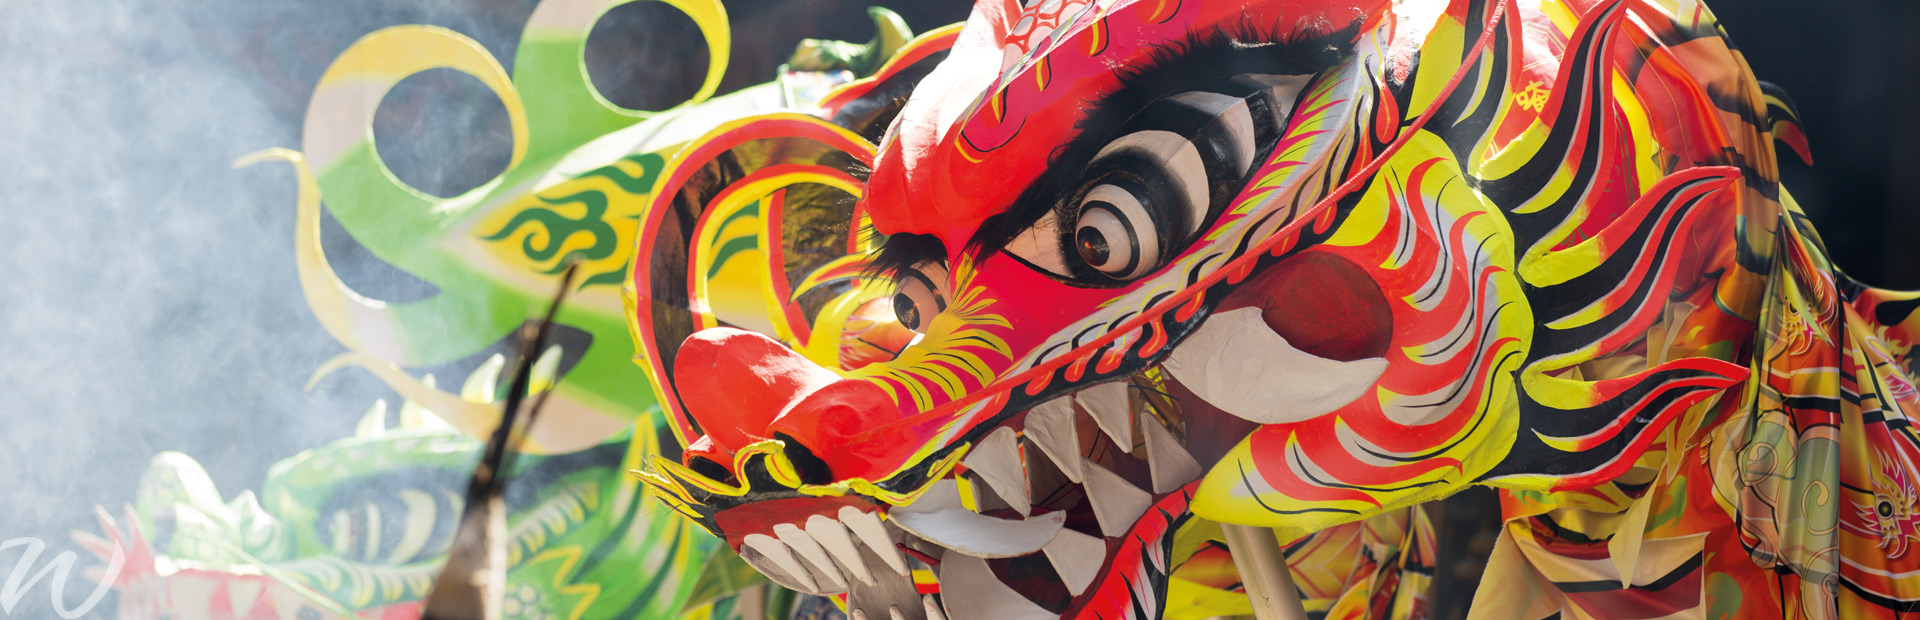 Chinese-new-year-dragon-dancers, year of the dog